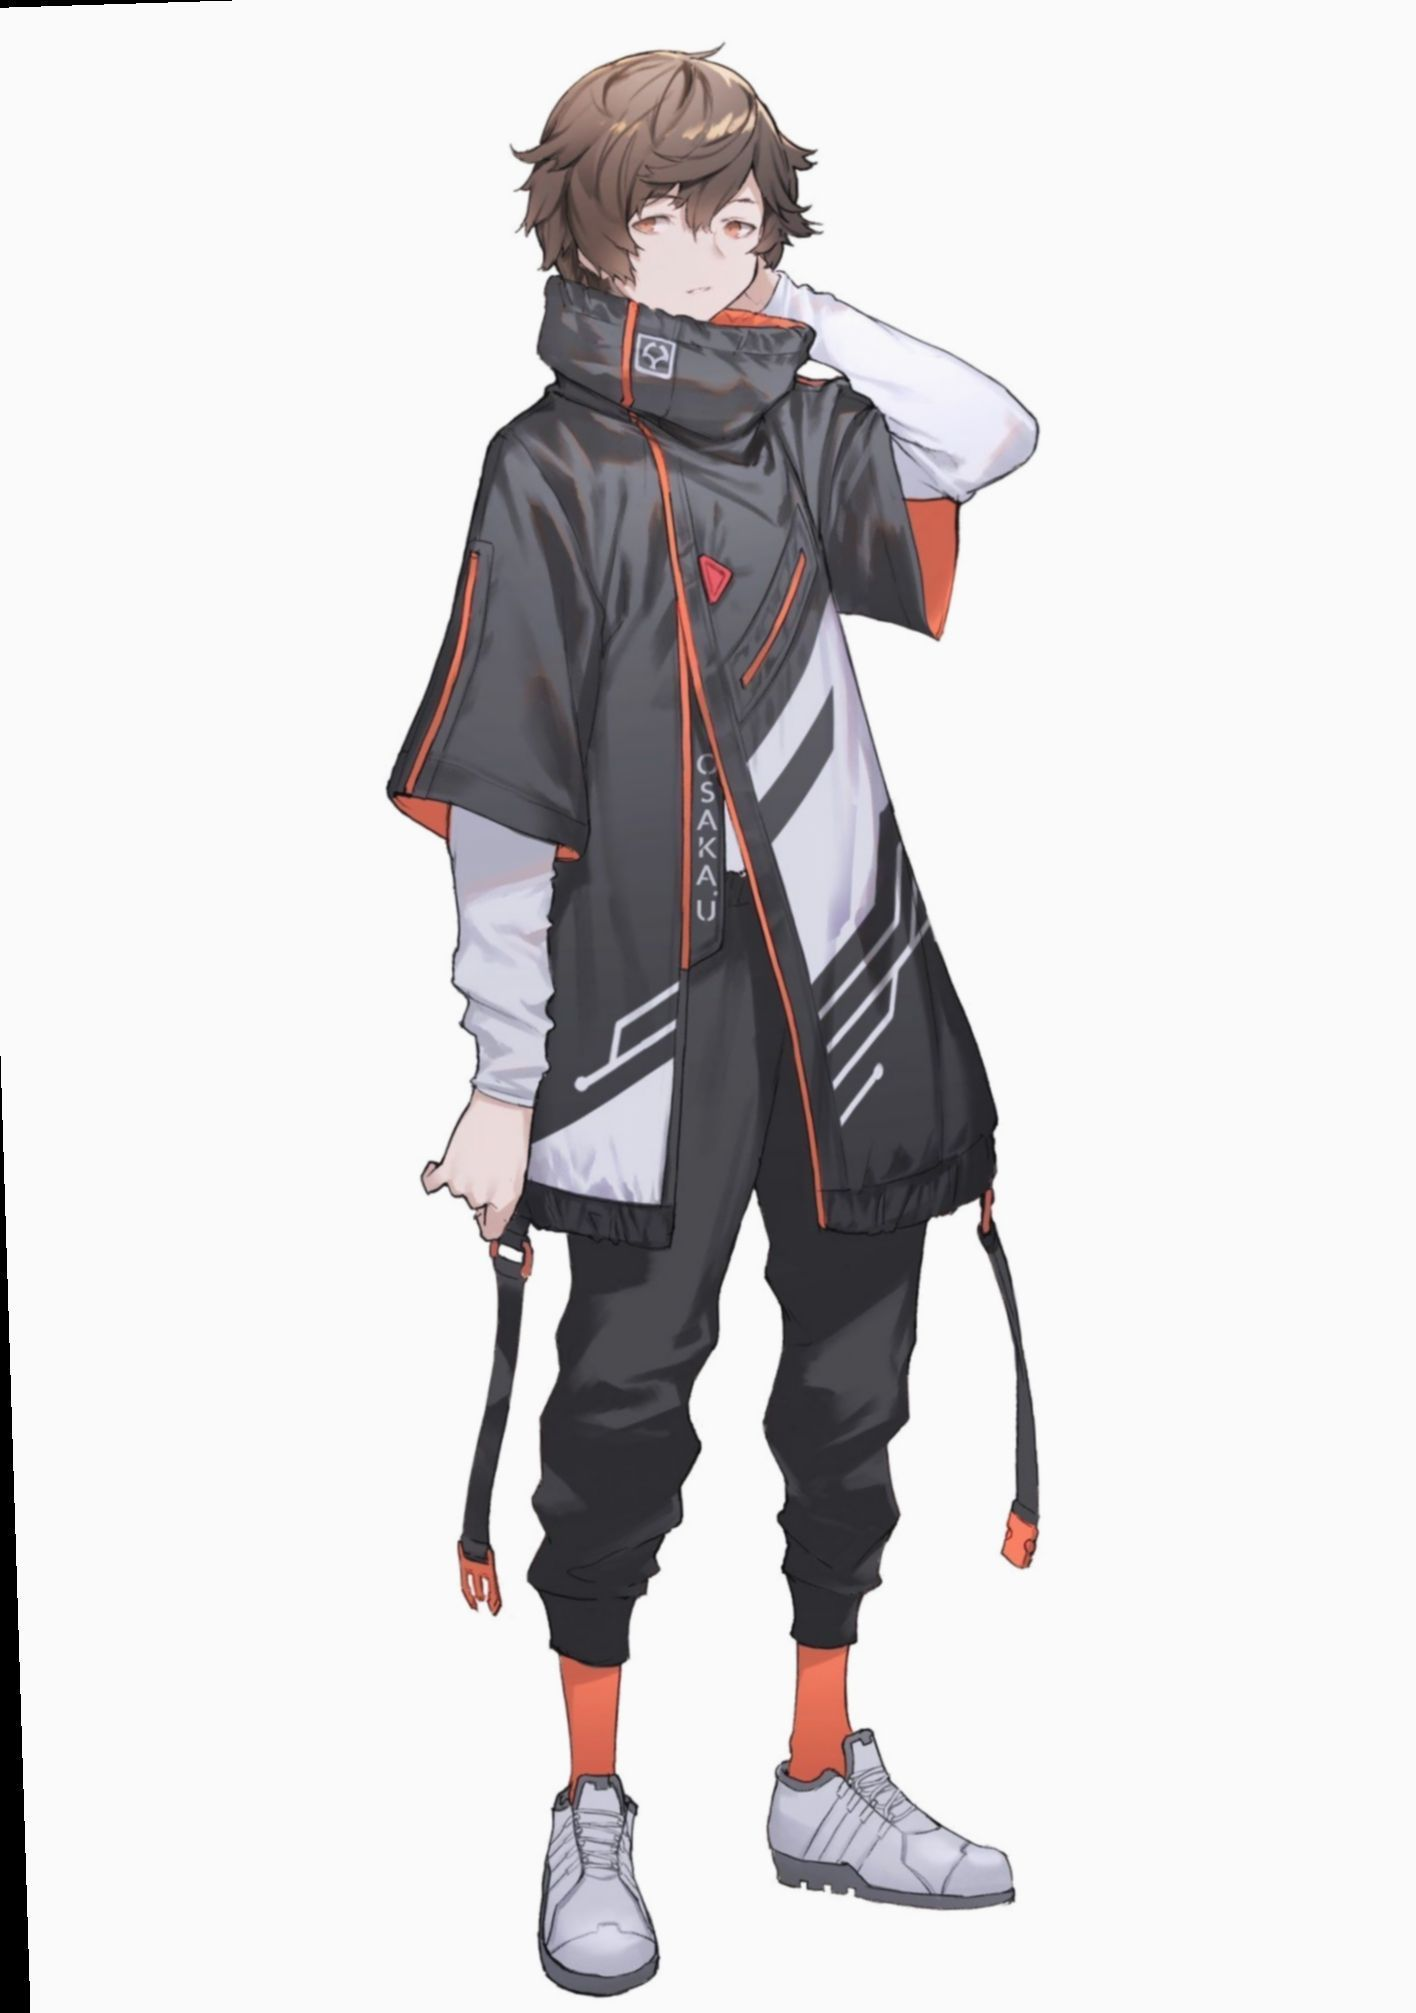 Anime Boy Clothes : anime, clothes, Anime, Outfits, Badass, #animeoutfits, Source, Ph…, Character, Design,, Design, Inspiration,, Cyberpunk